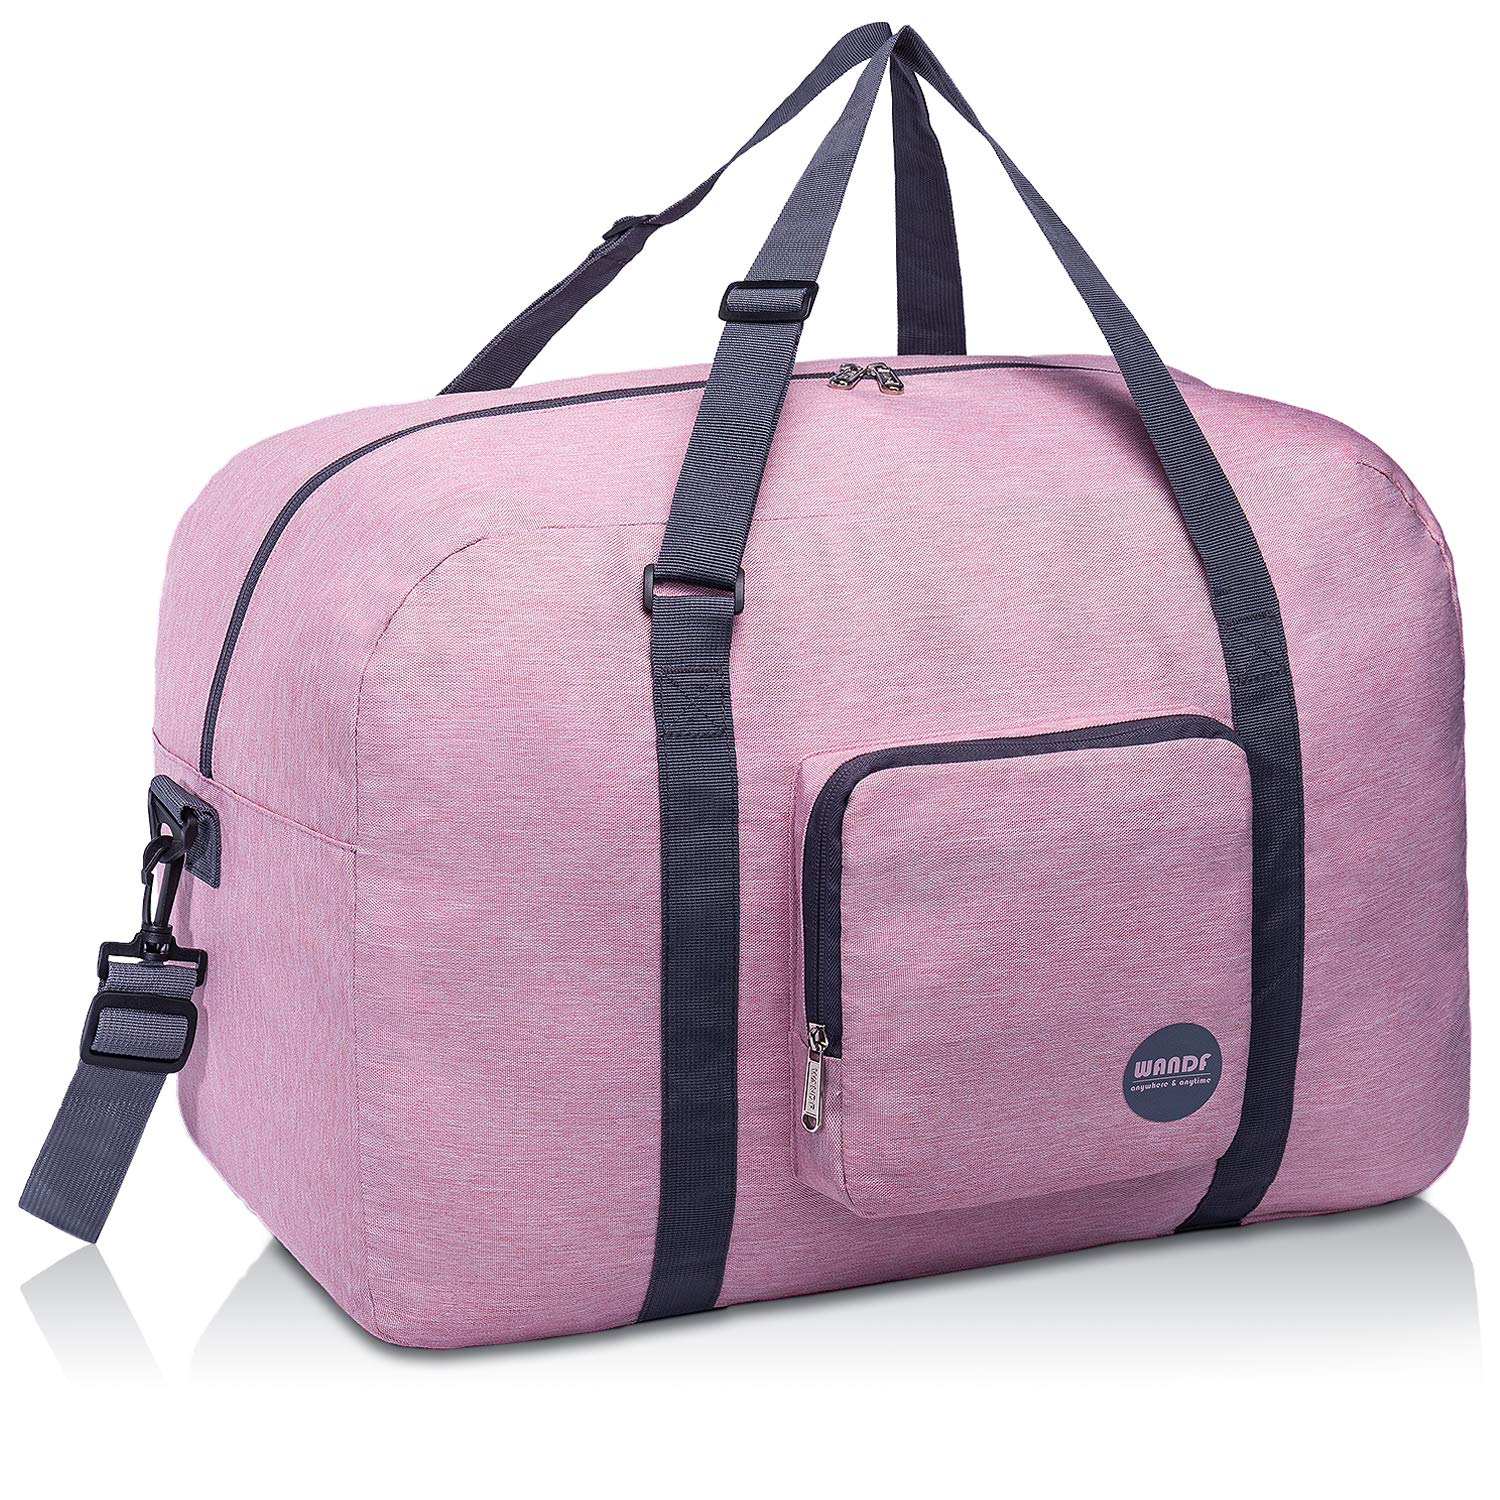 """WANDF 16"""" ~ 22"""" Foldable Duffle Bag 20L ~ 50L for Travel Gym Sports Packable Lightweight Luggage Duffel Water-resistant"""